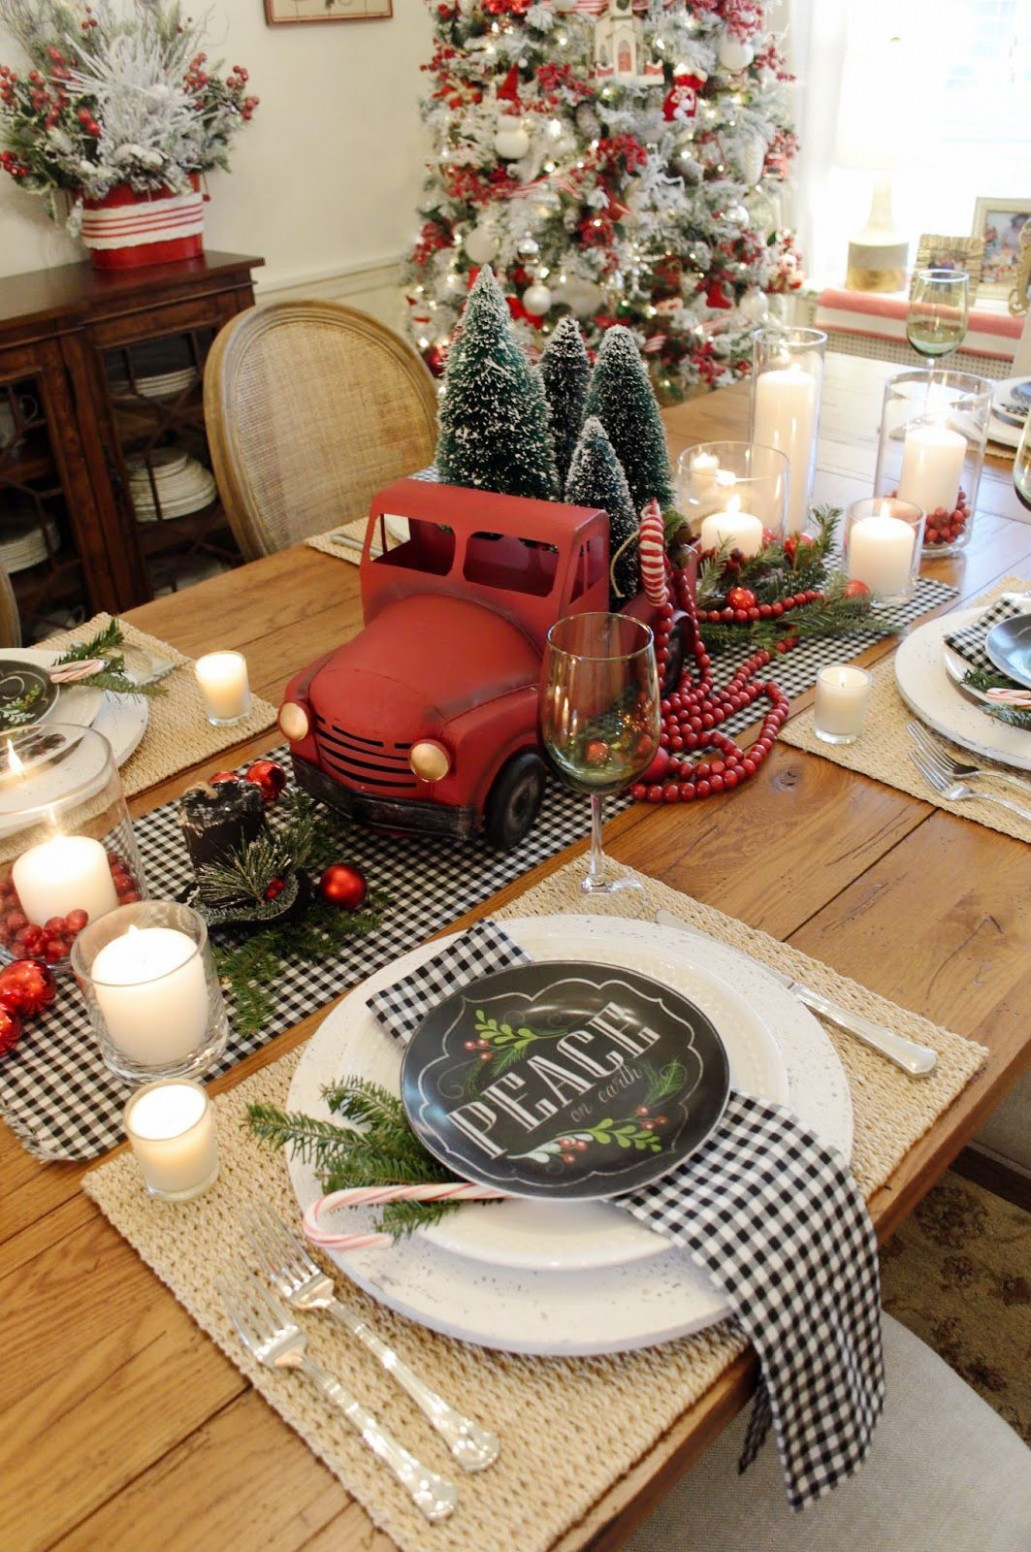 9 Best Christmas Table Settings - Decorations and Centerpiece  - Xmas Dining Room Ideas